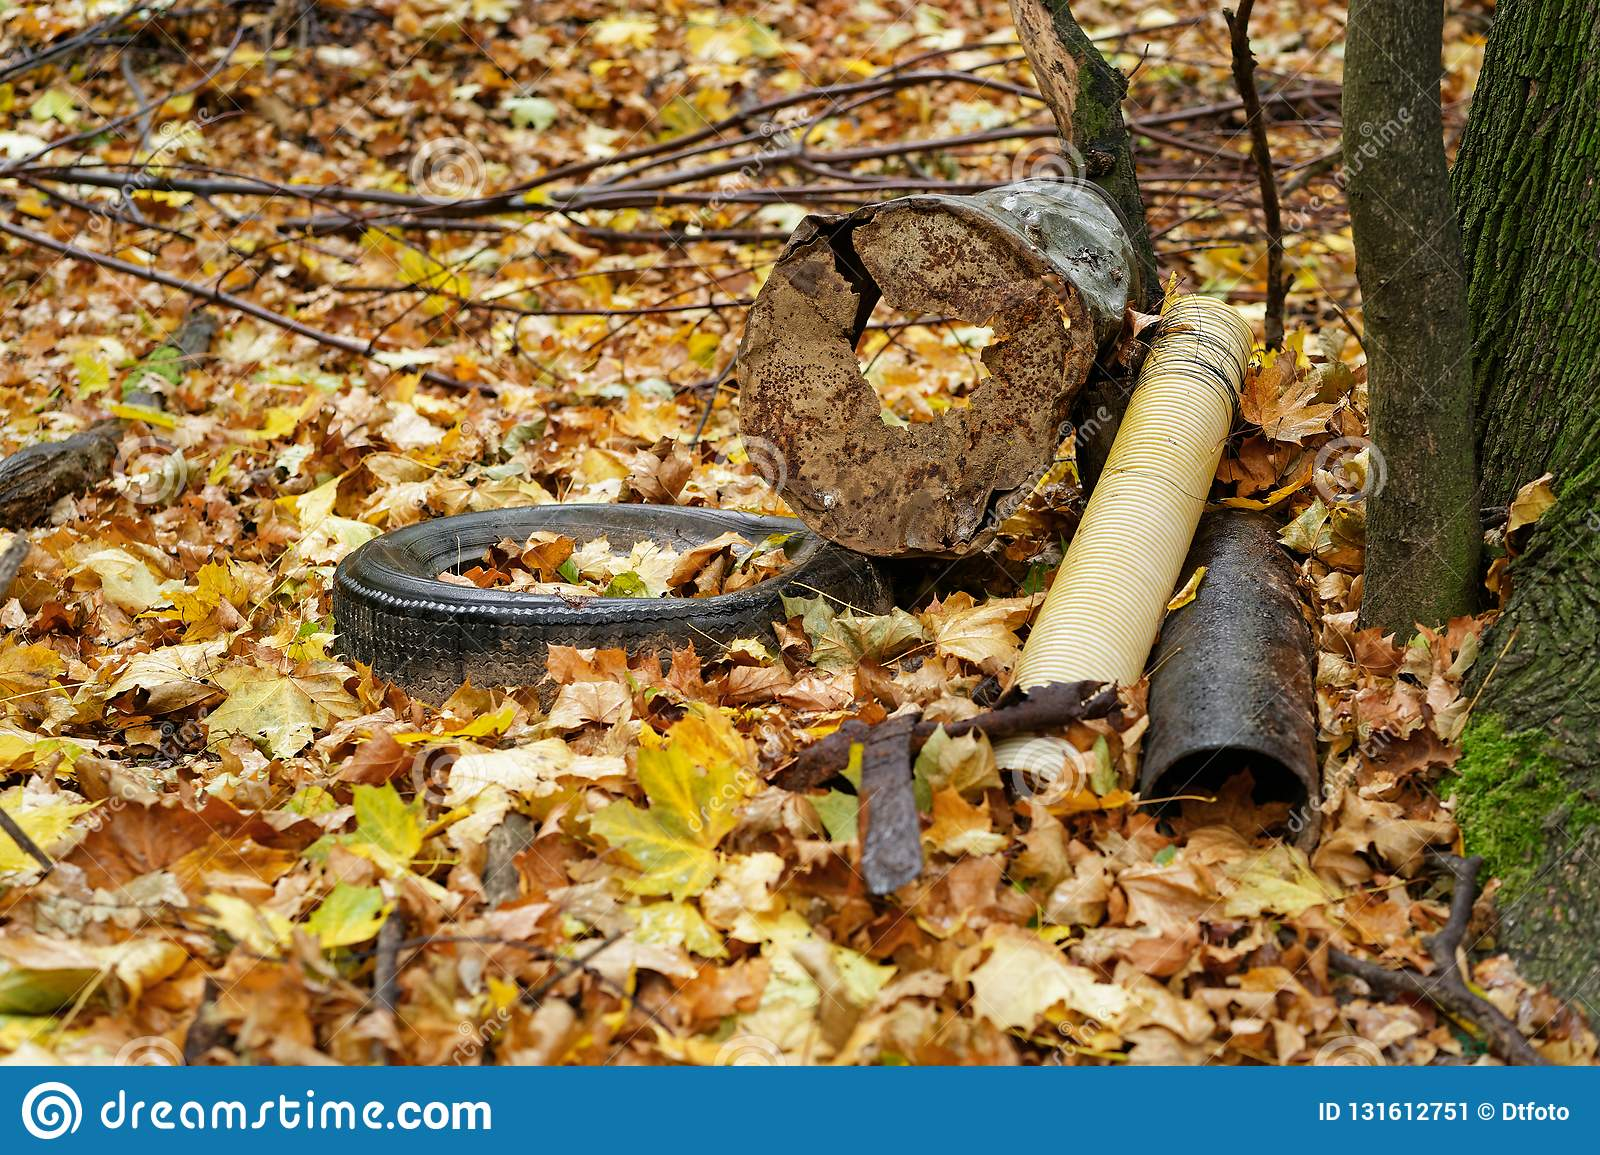 Garbage deposit in the forest on a tree, car tires, metal scrap, components, autumn leaves cover the ground